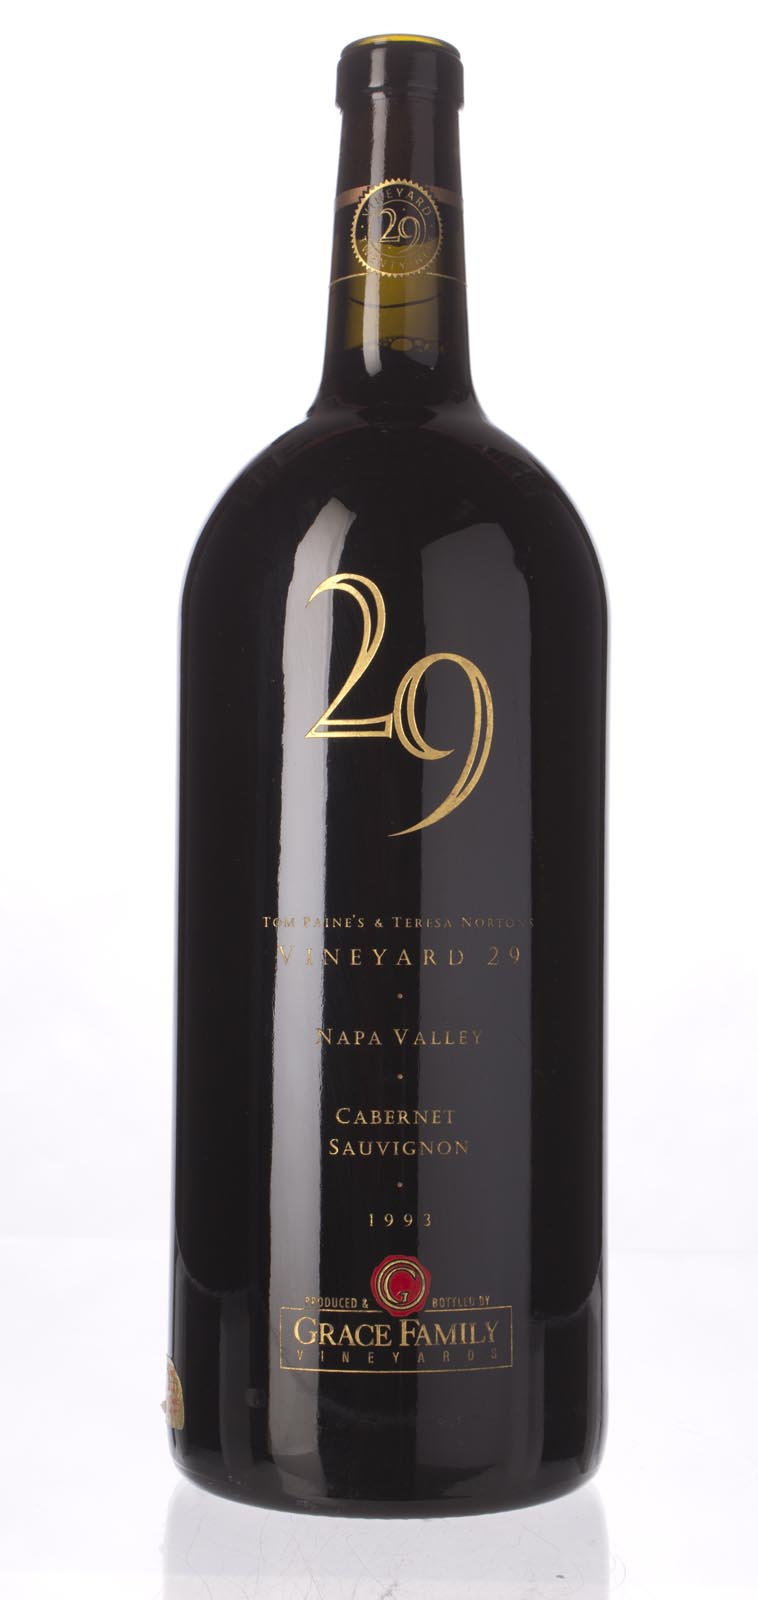 Vineyard 29 Cabernet Sauvignon Napa Valley 1993, 3L () from The BPW - Merchants of rare and fine wines.